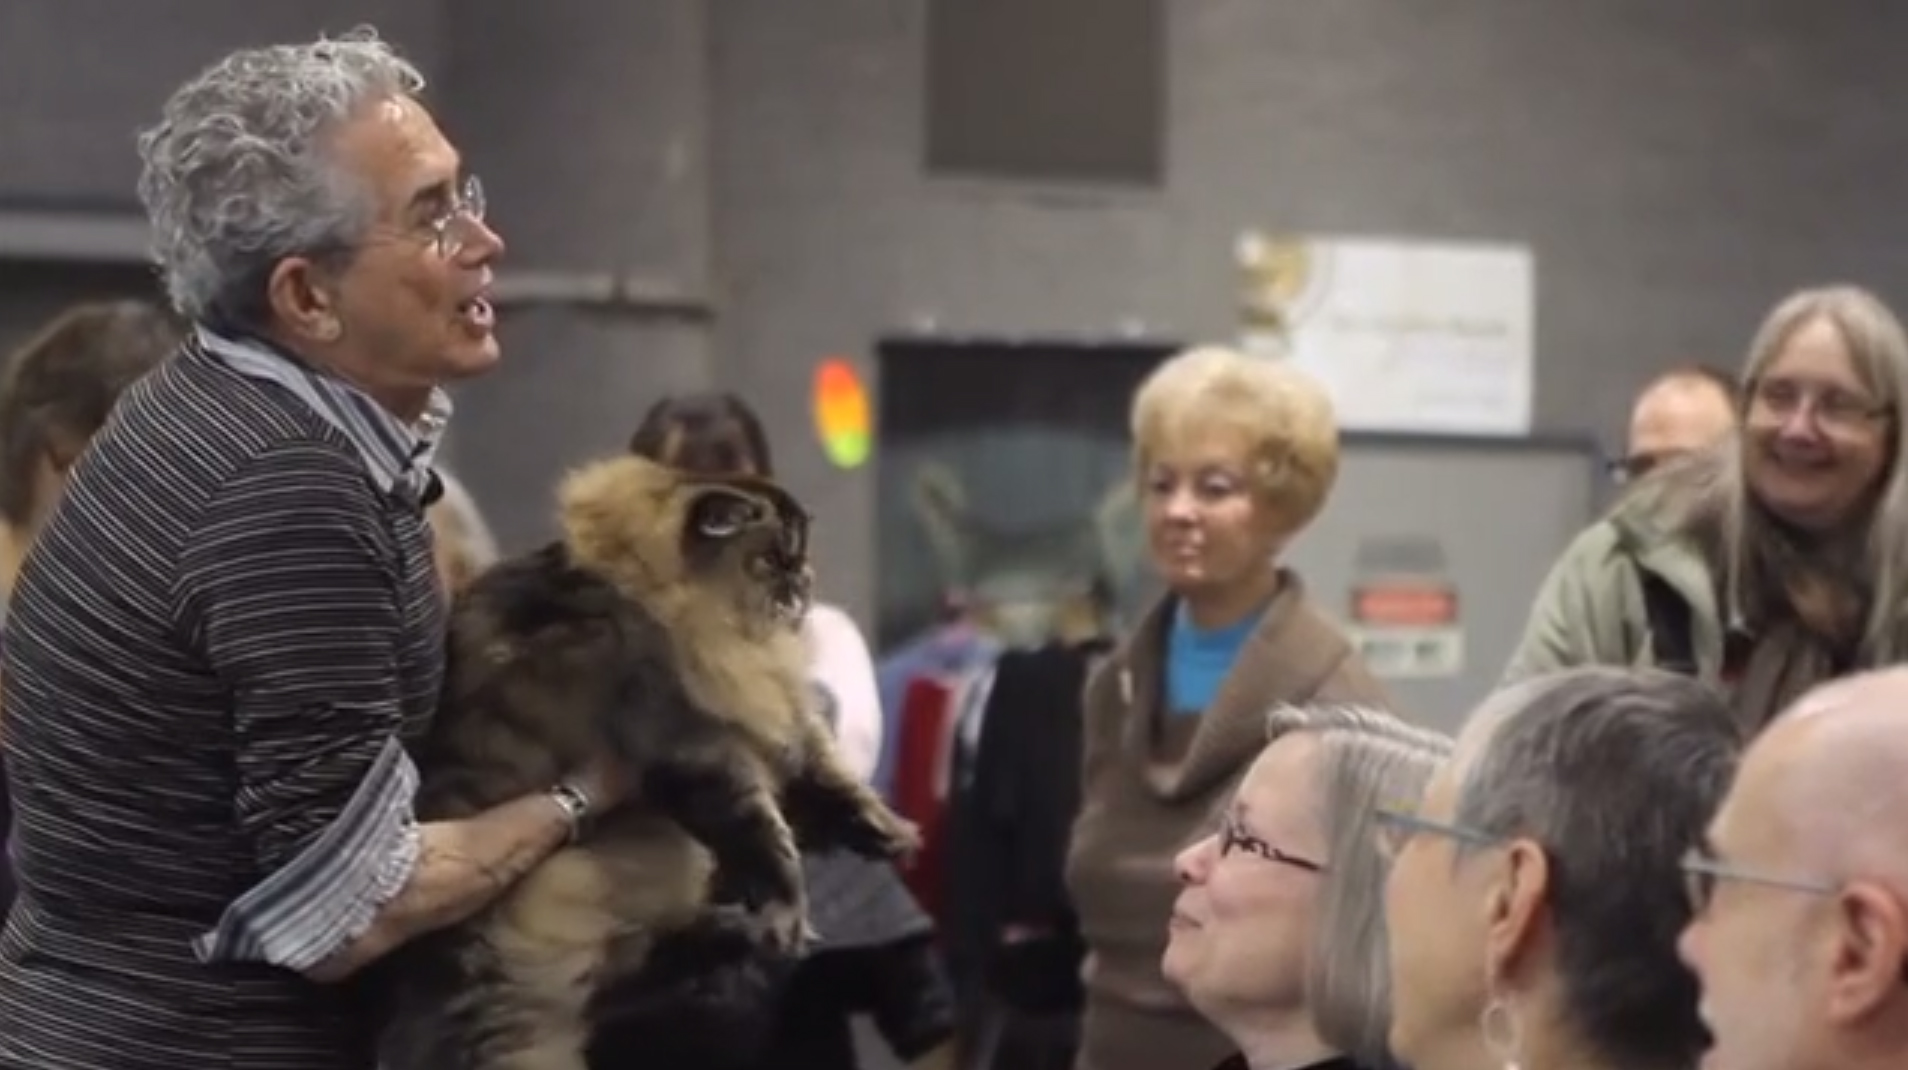 New York native Walter Hutzler has more than 40 years of experience judging cat shows, and he brings his expertise to the Saintly City Cat Club's Annual Championship & Household Pet Cat Show in St. Paul.